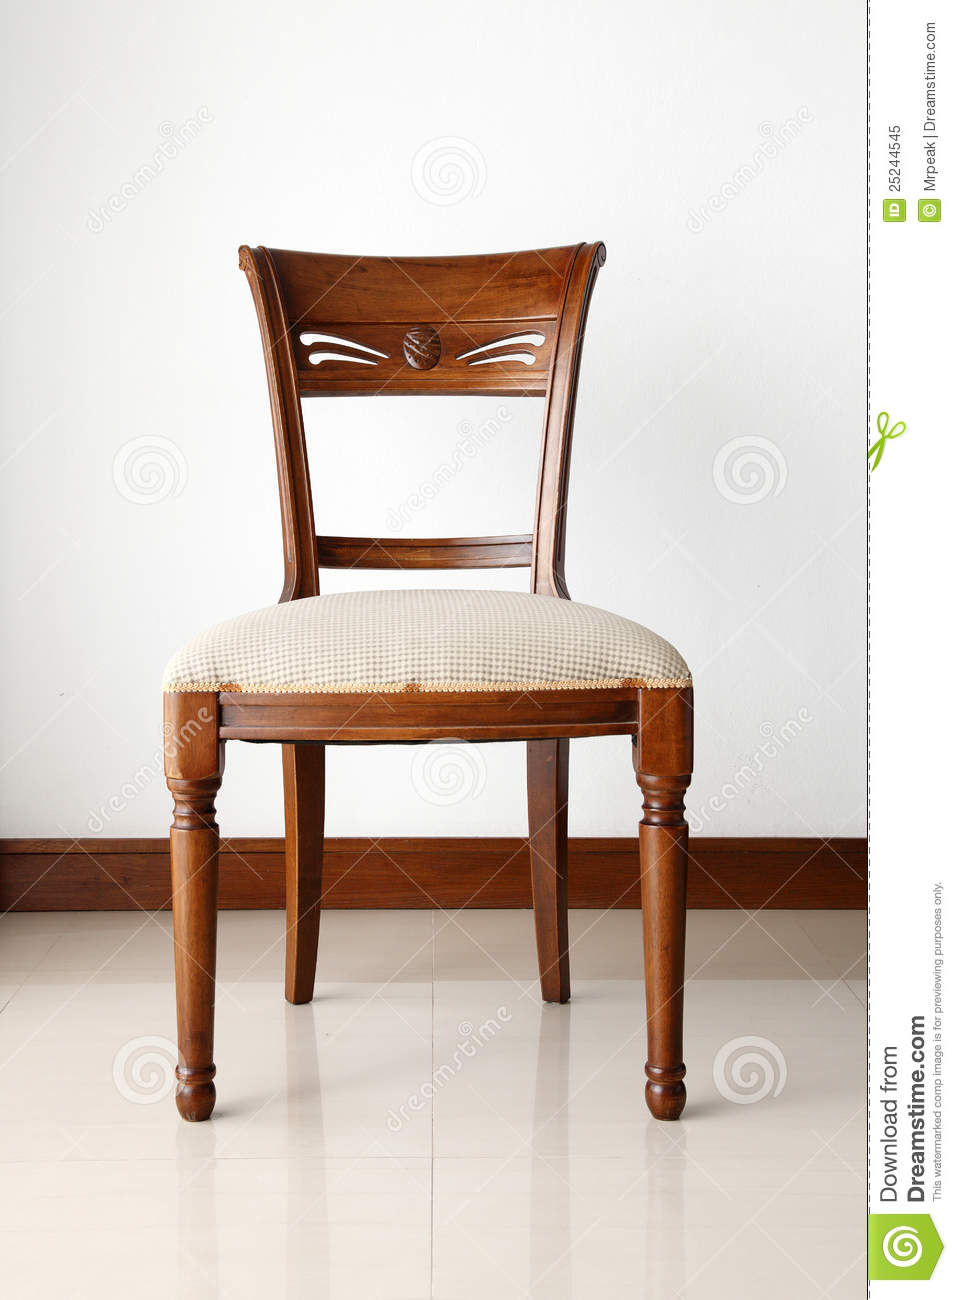 A Wooden Chair With Soft Cushion Royalty Free Stock Photo ...